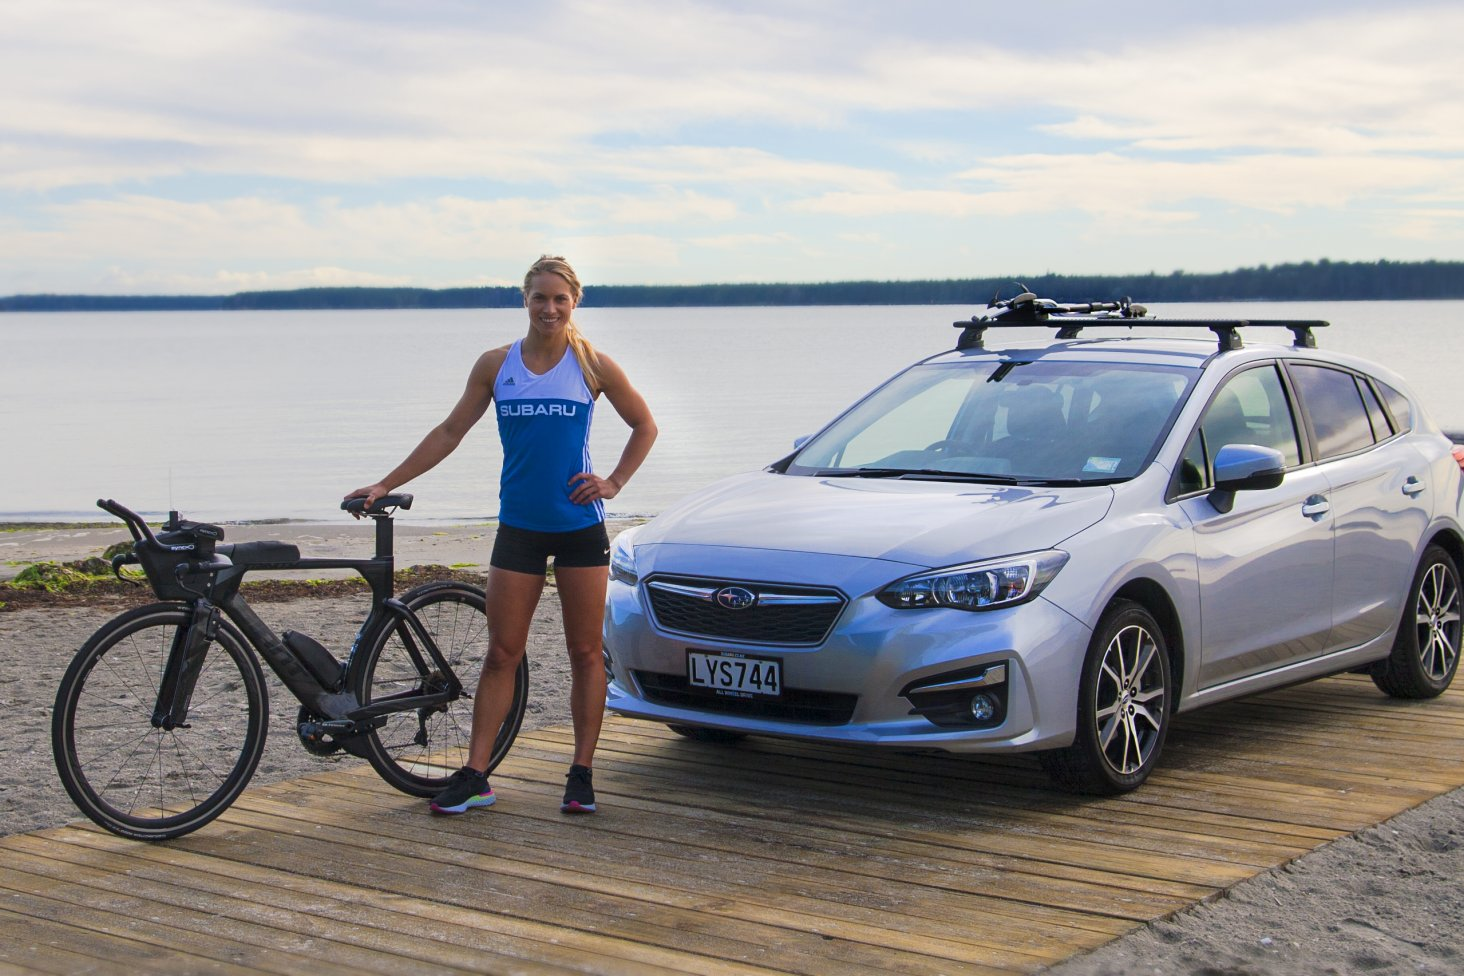 Subaru of New Zealand is excited to announce the ultimate Kiwi adventure brand has partnered with professional triathlete and lifestyle/wellness ambassador Hannah Wells. PC: Paul Brunskill